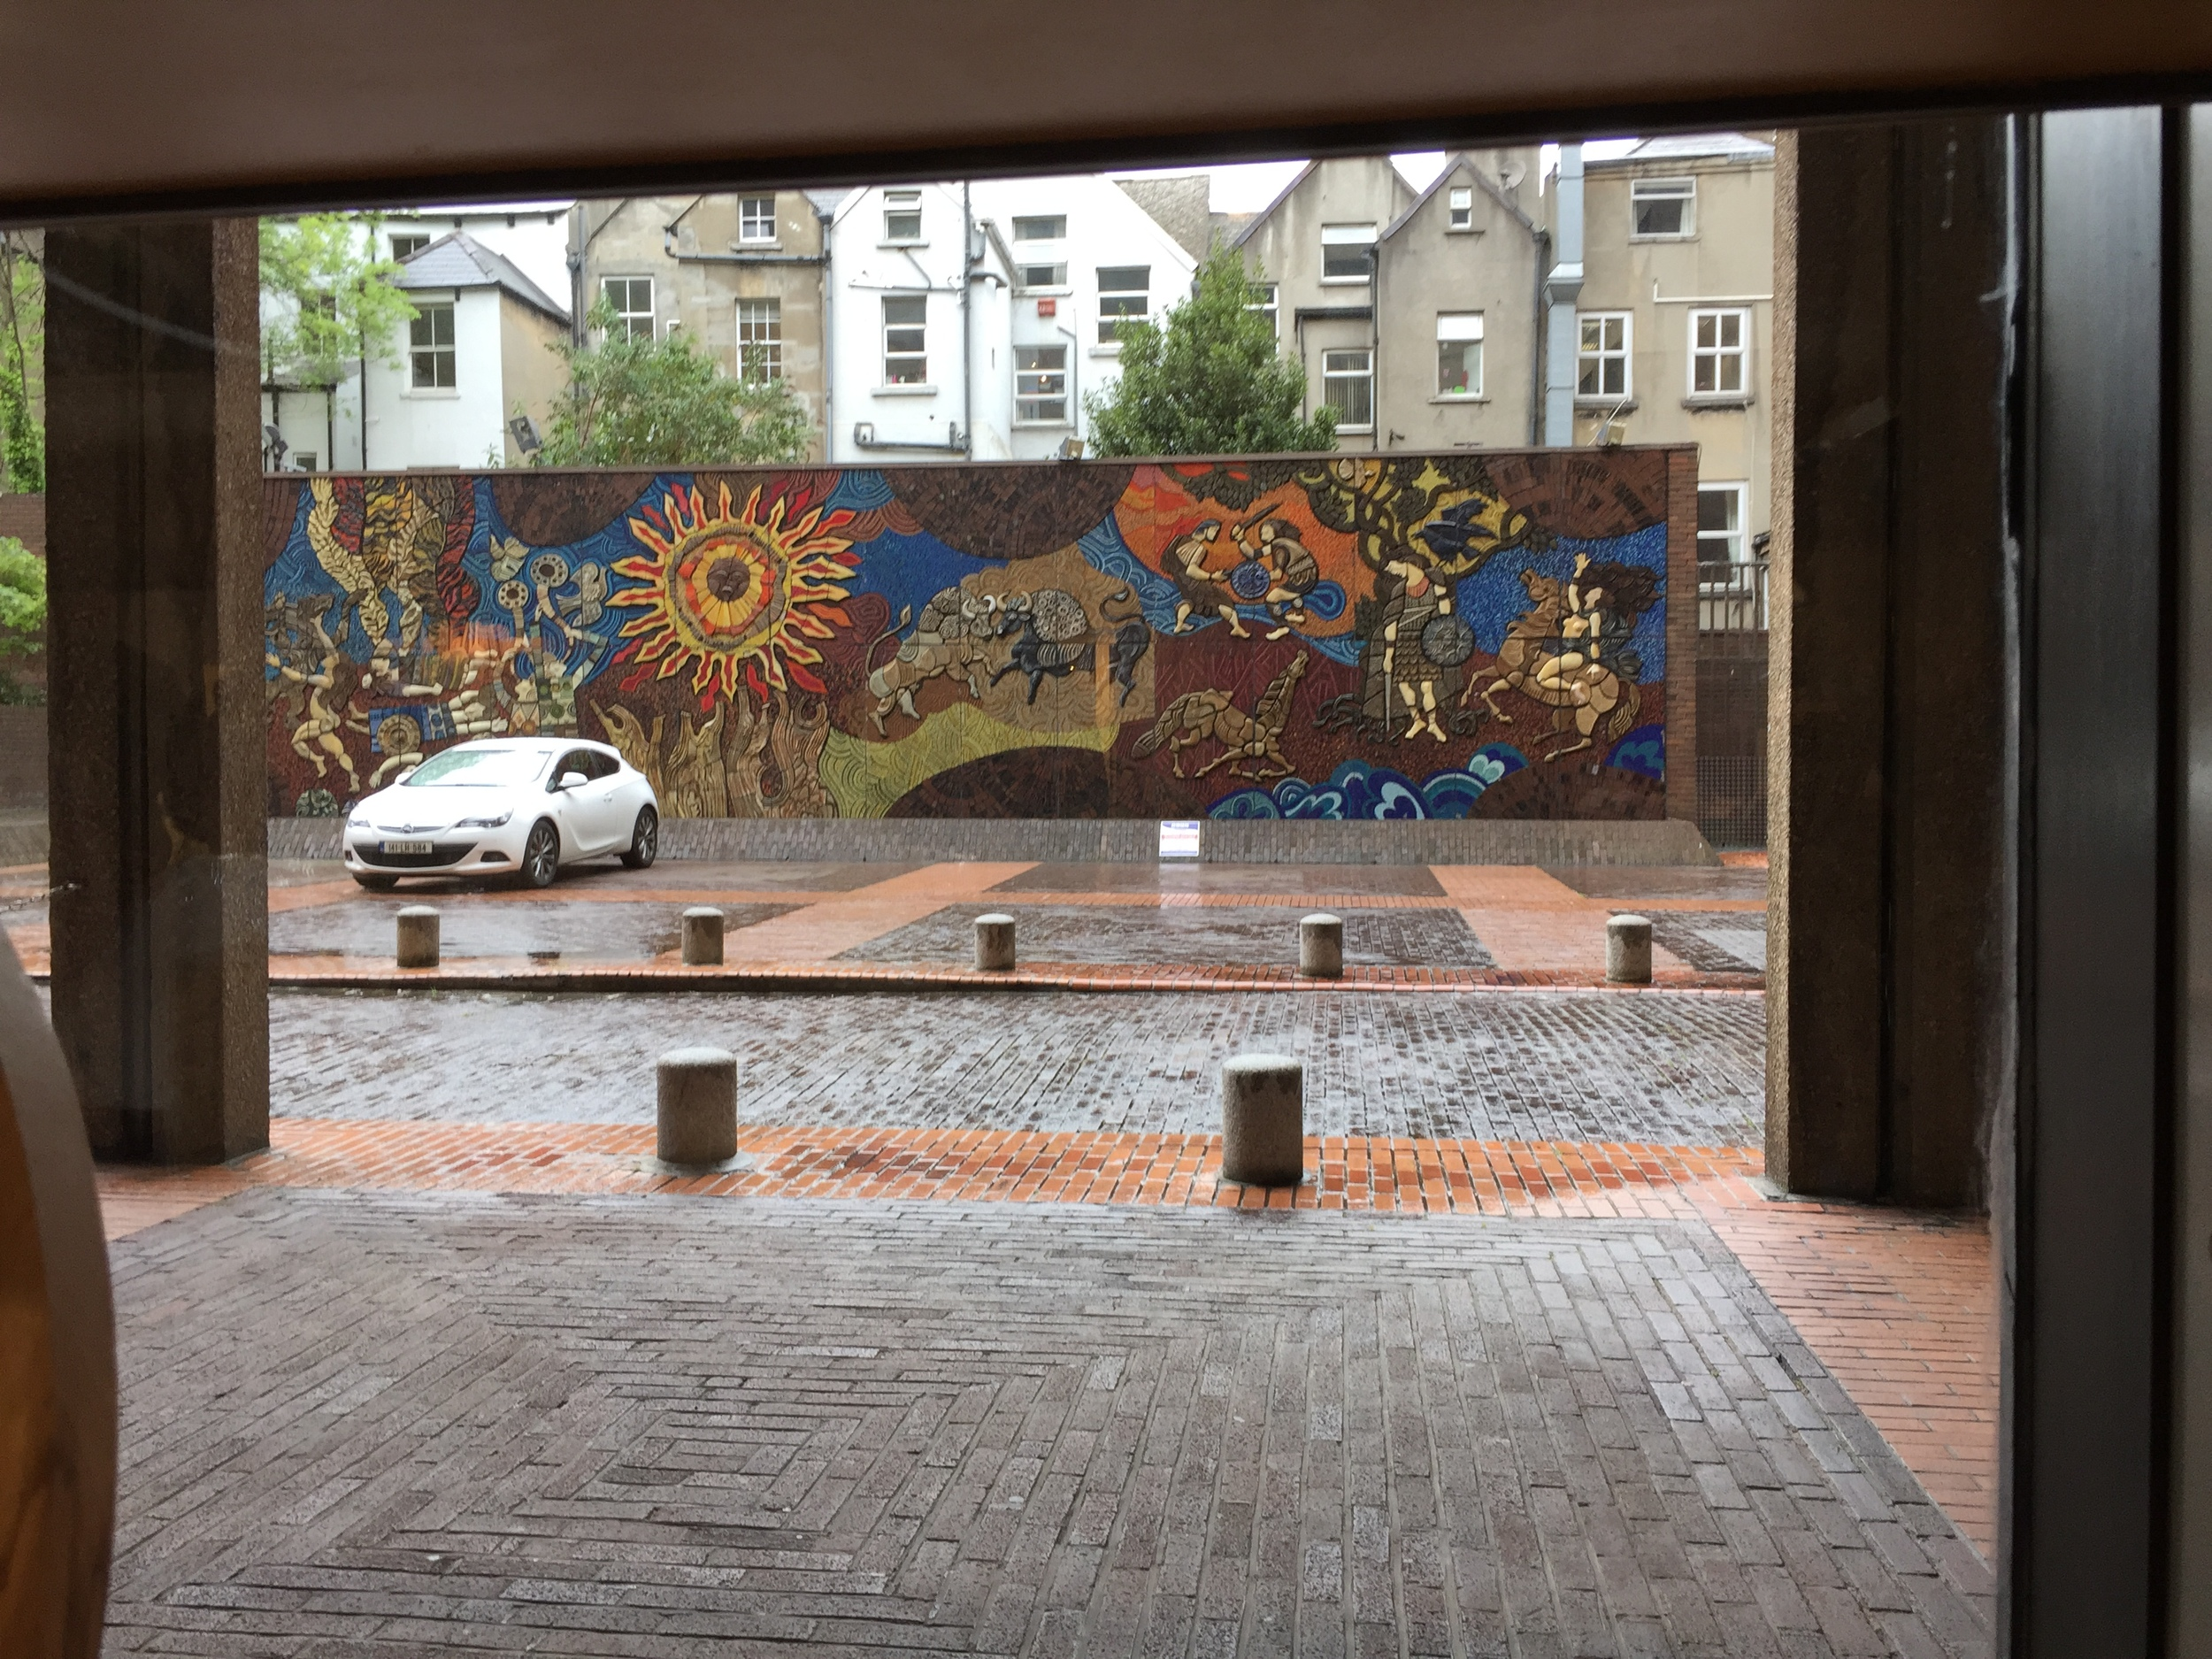 Mural depicting the acts of Irish Hero Cúchulainn in the Táin saga outside Kilkenny Design Centre in Dublin.